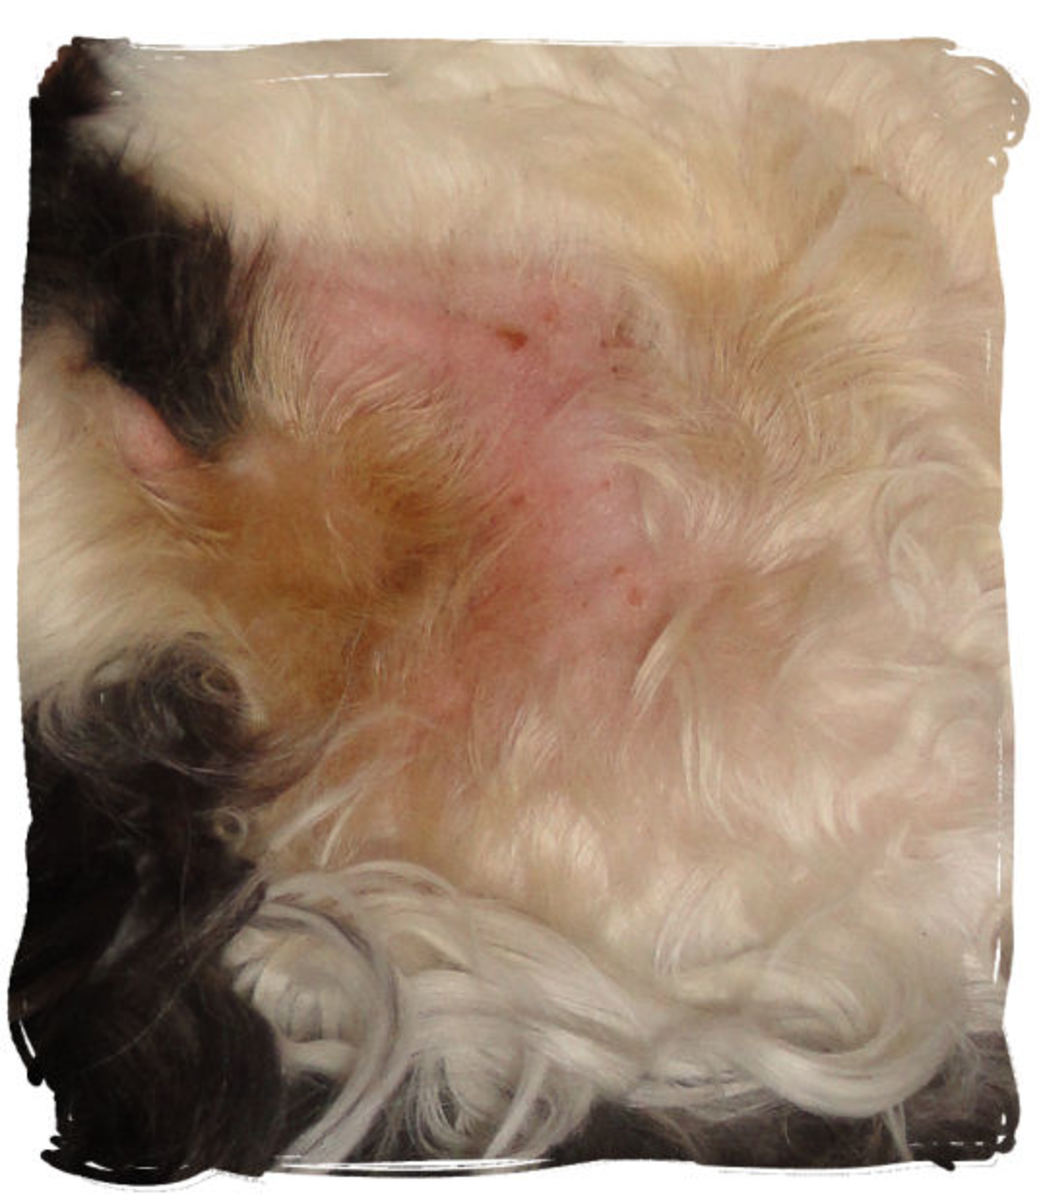 Hot Spot, Bald, Healing: Here is a hot spot under my cat's arm. It is in the process of healing with the help of a cone and treatment with HomeoPet Hot Spot. Some fur is discolored from the open lesions a couple days prior.